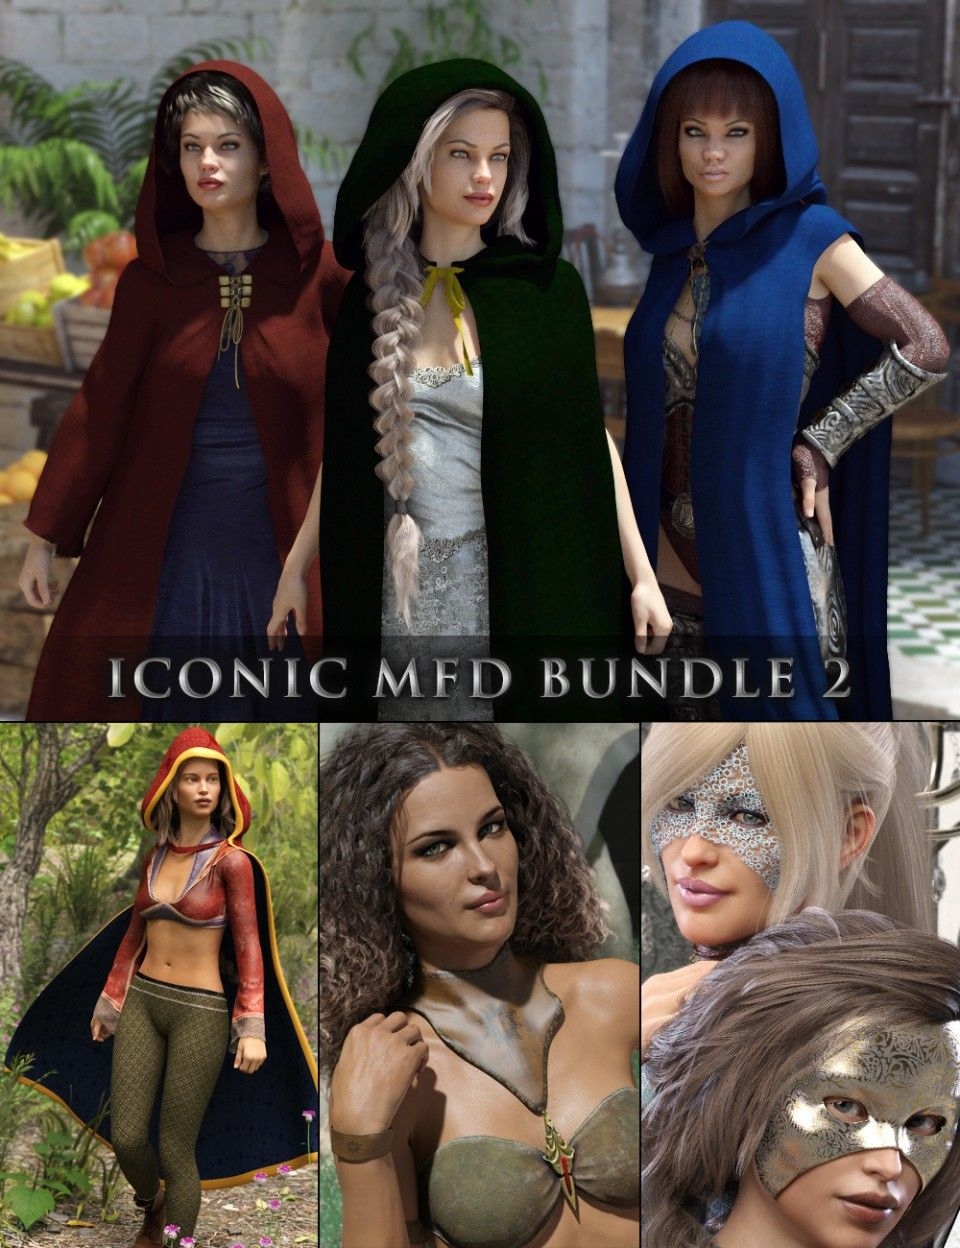 Iconic MFD Bundle 2 G8F | Daz3D Clothing 1 | Female, Model